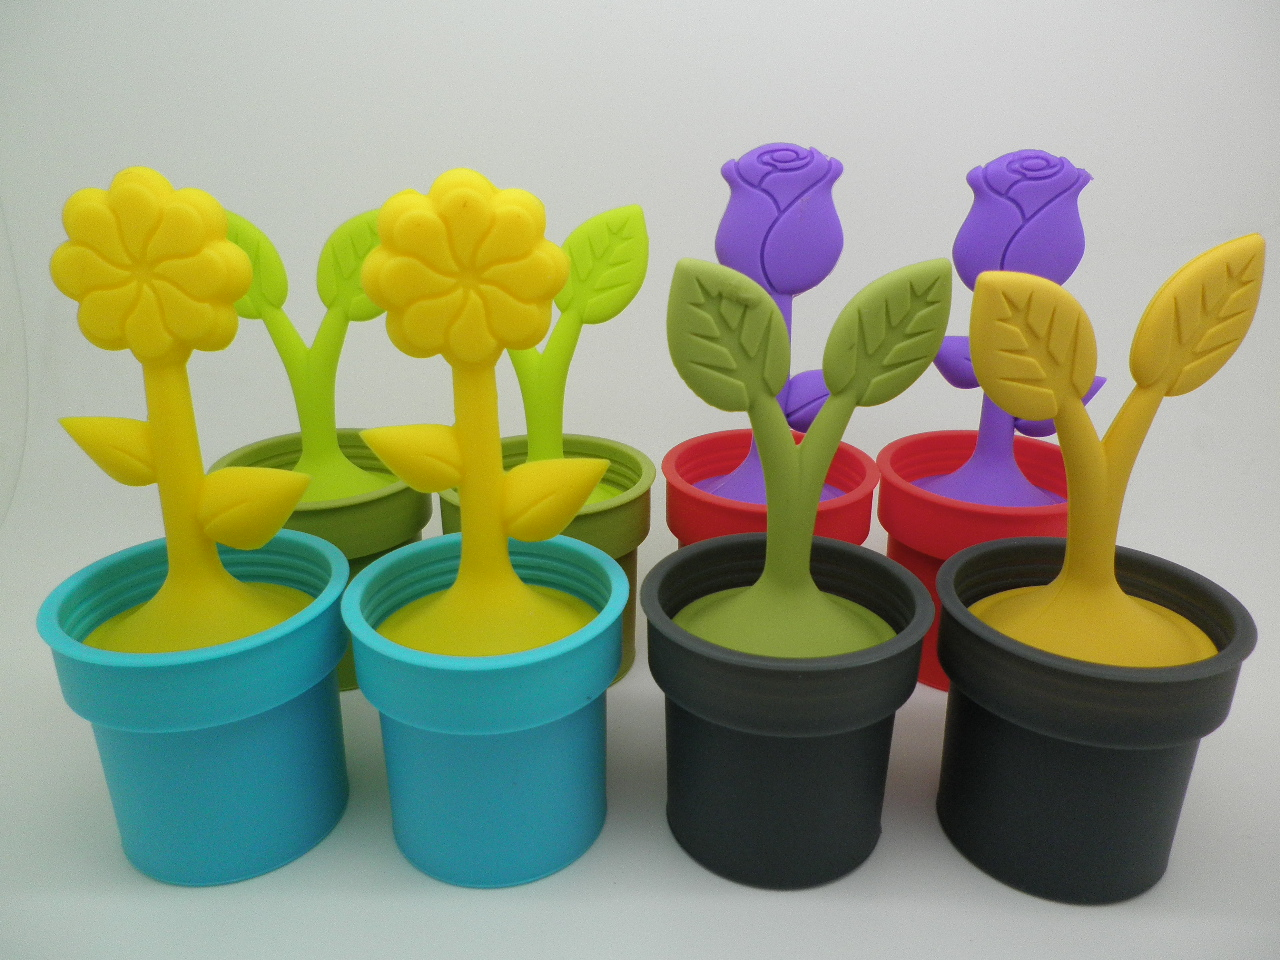 http://www.refinehksilicone.cn/data/images/product/20180417100851_899.JPG